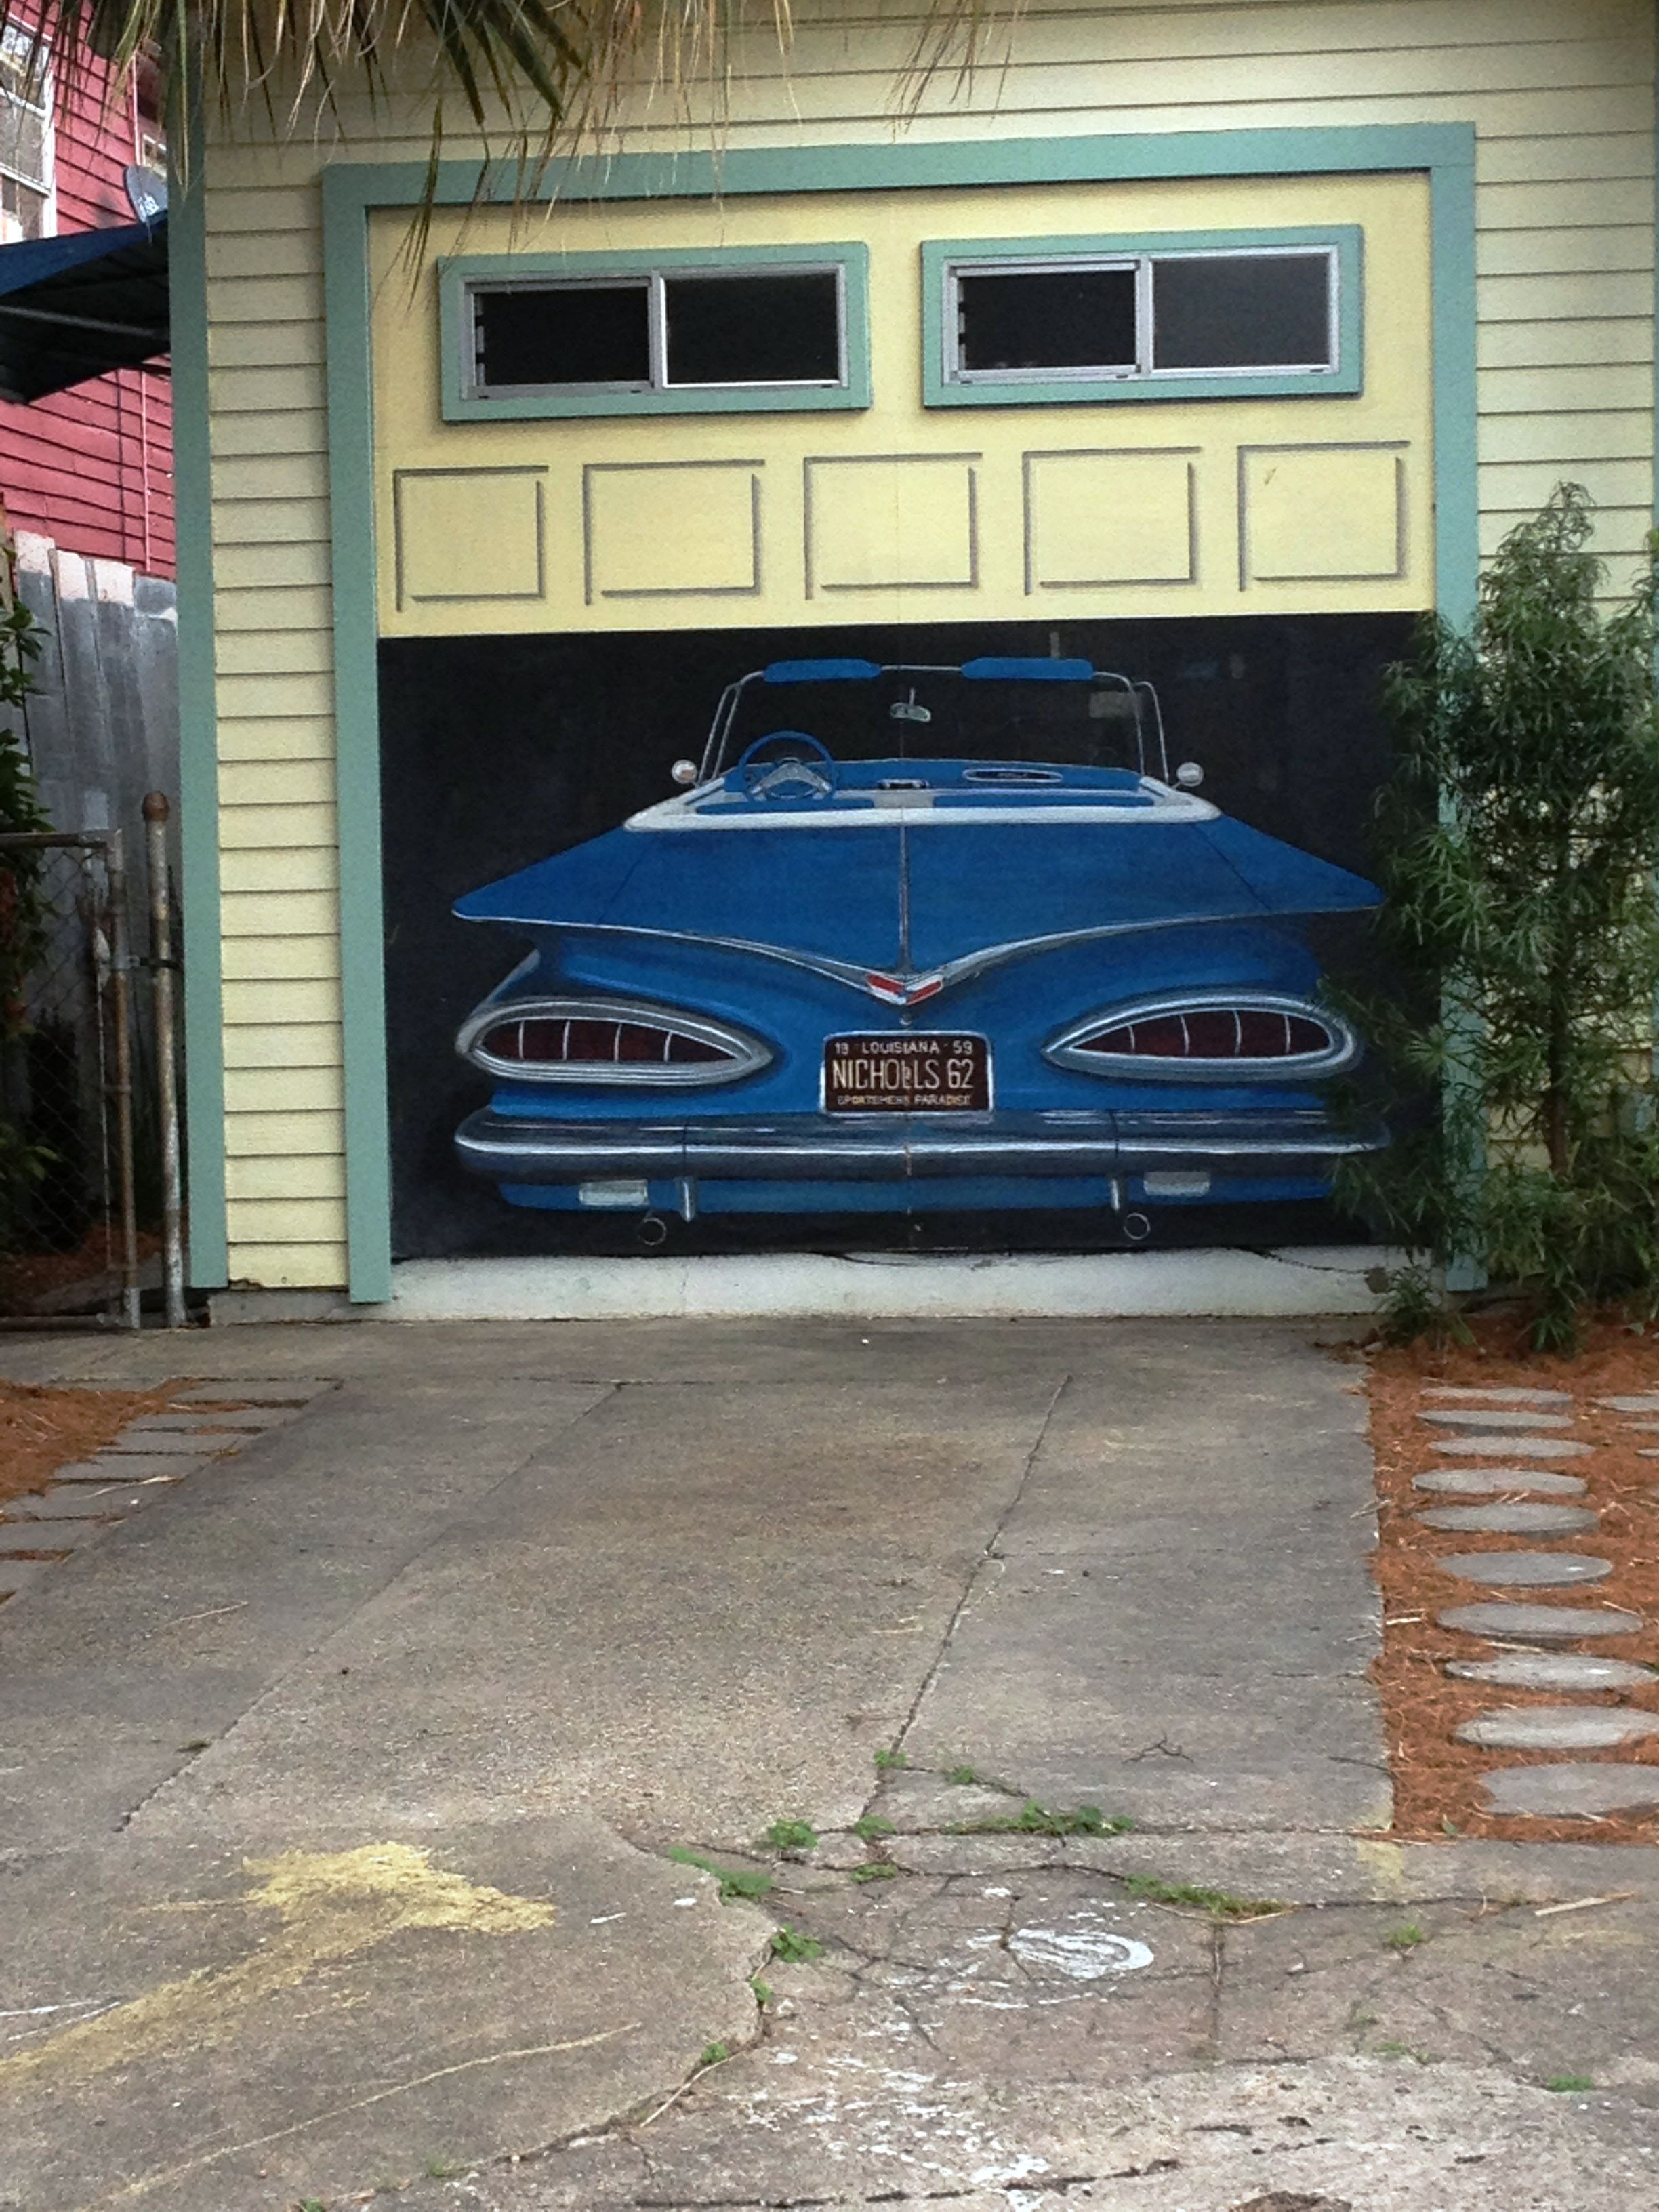 new orleans thatu0027s a painted garage door donu0027t know whatu0027s inside